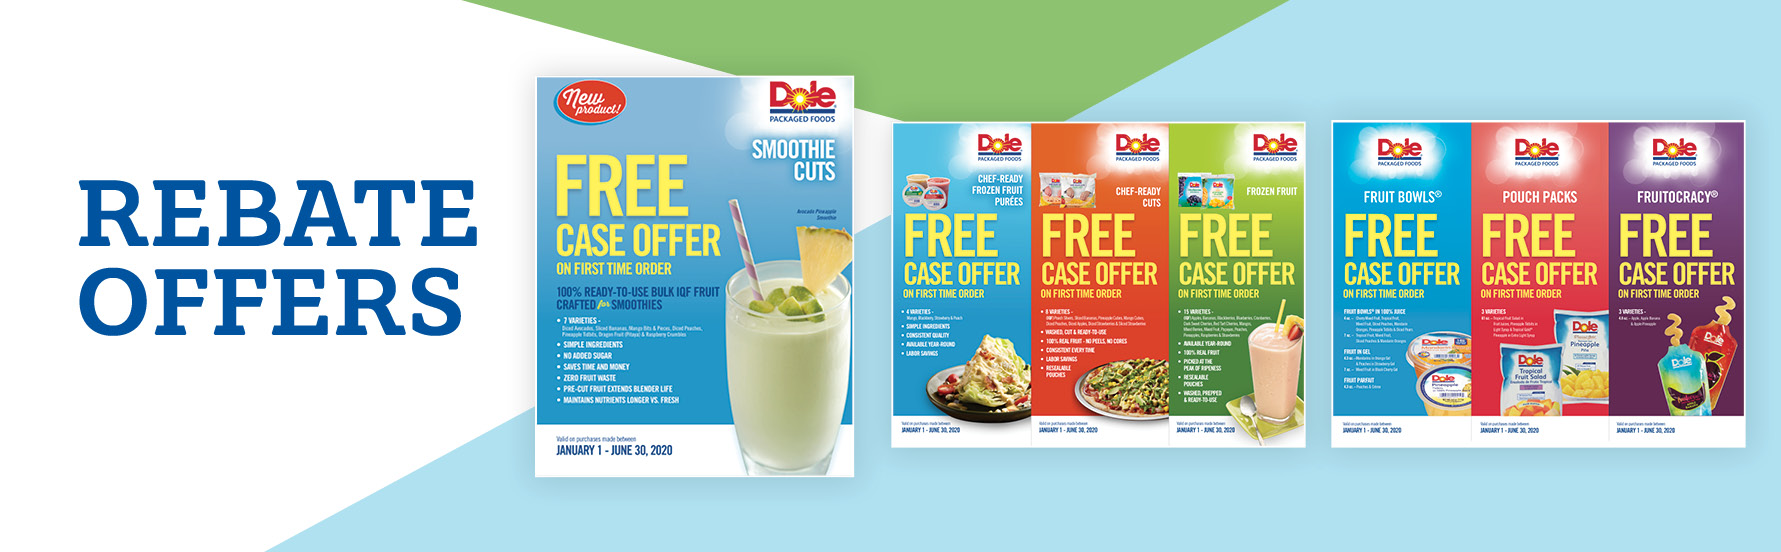 34239 dole rebate offer tout